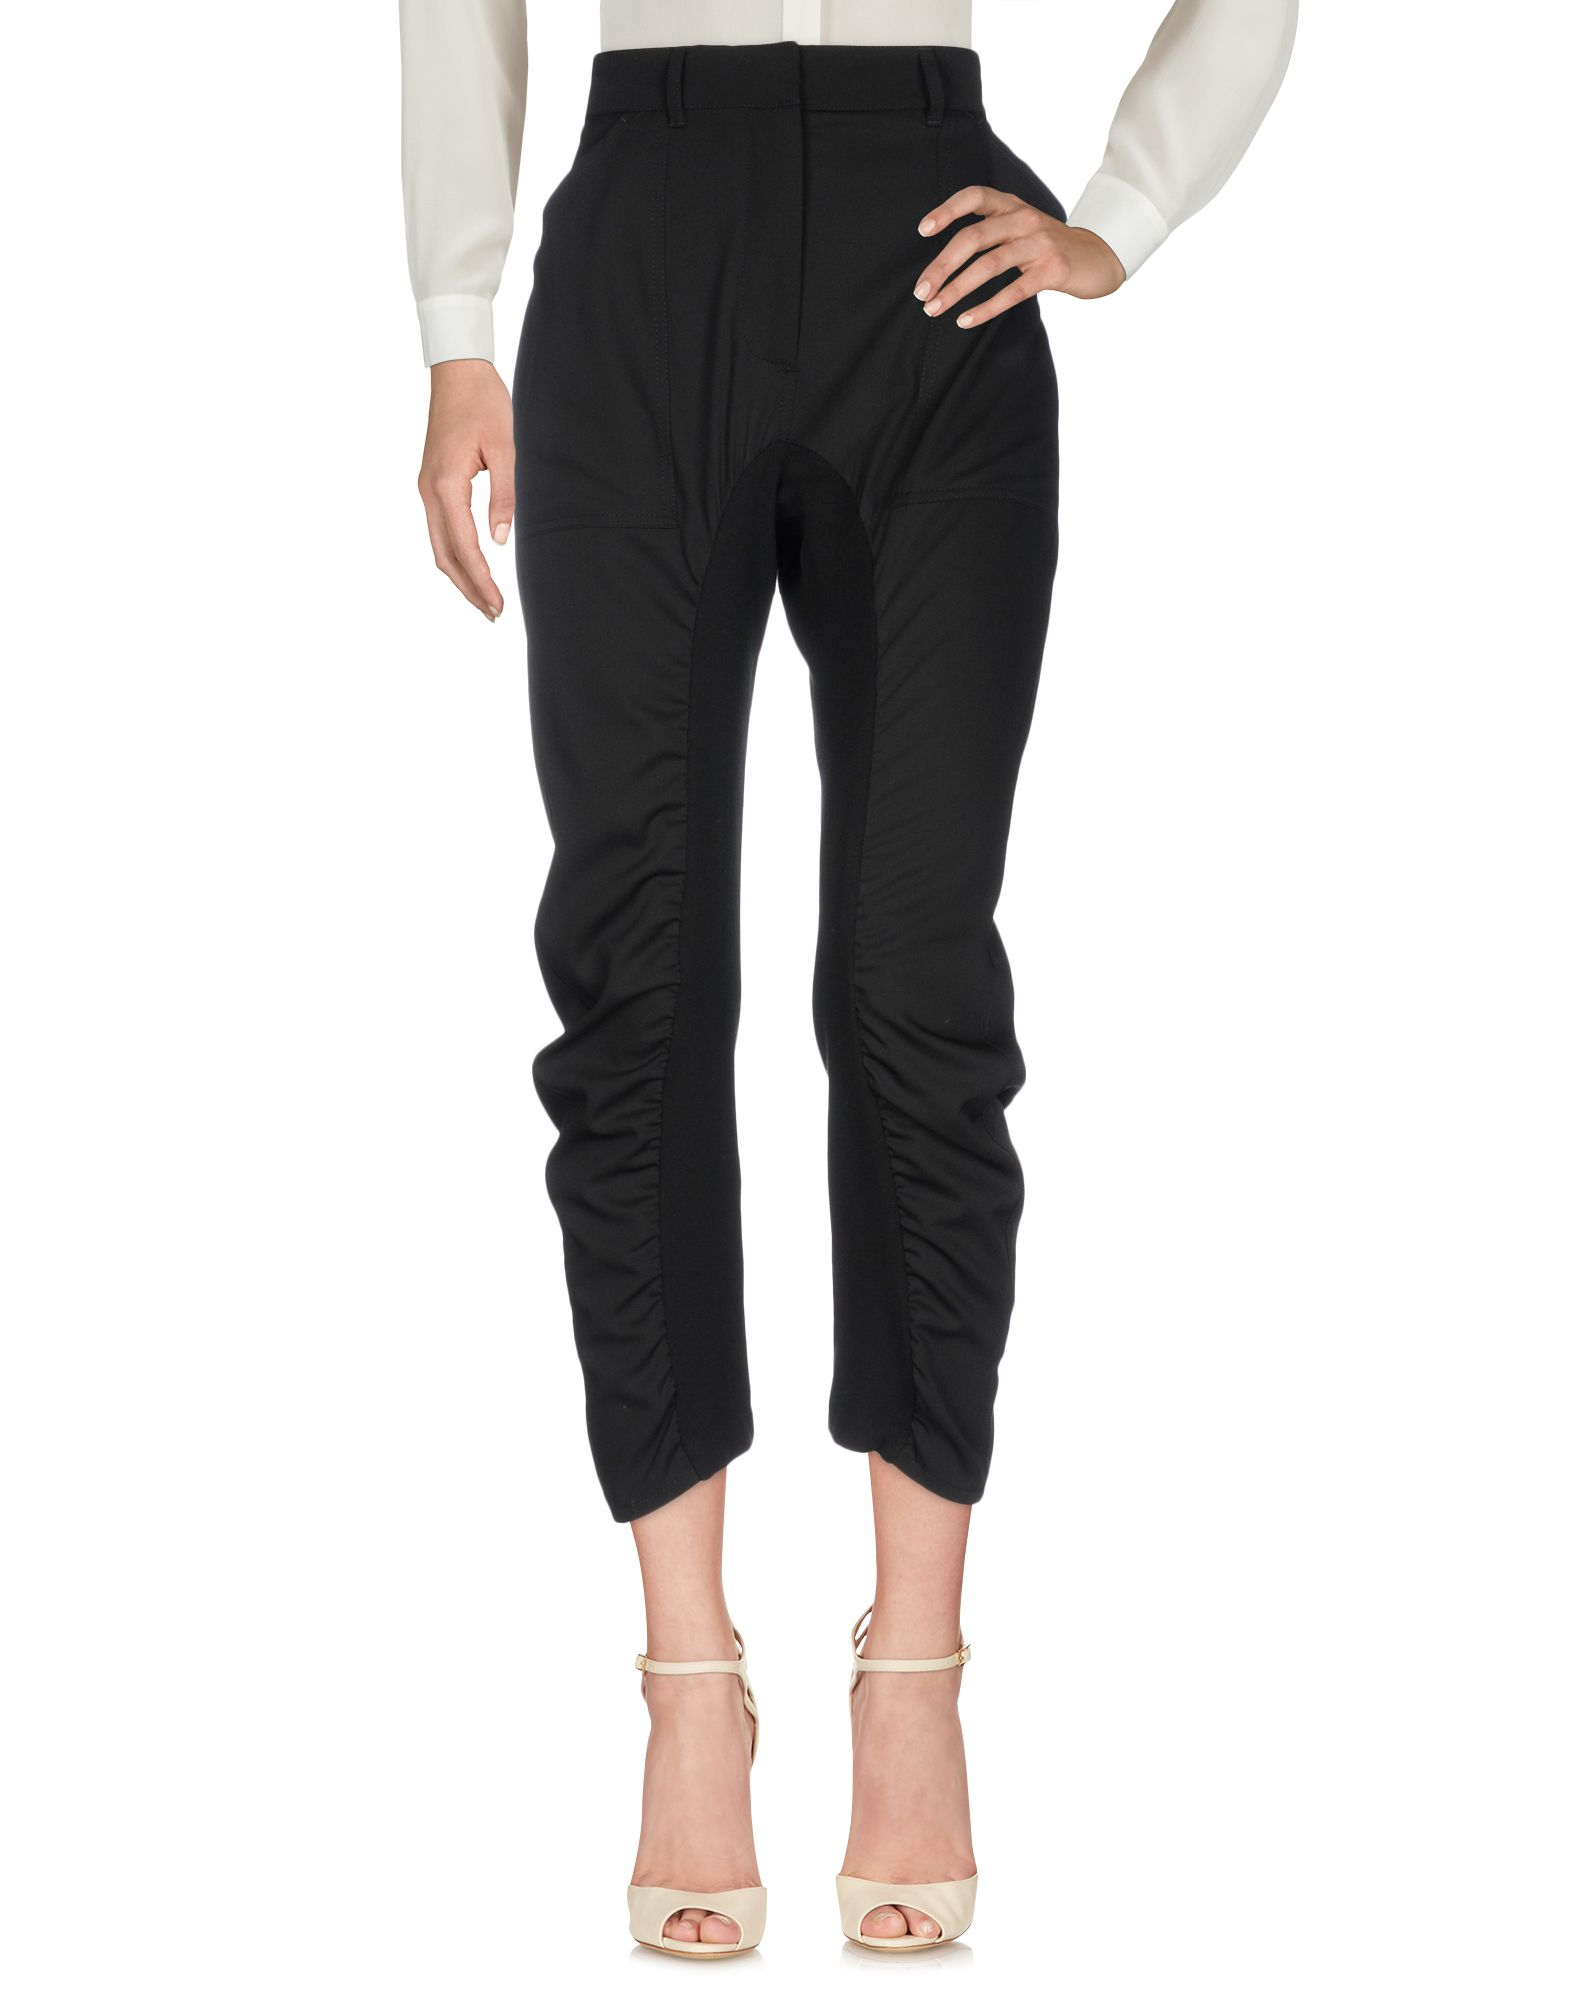 Pantalone Stella Stella Mccartney donna - 13122389AT